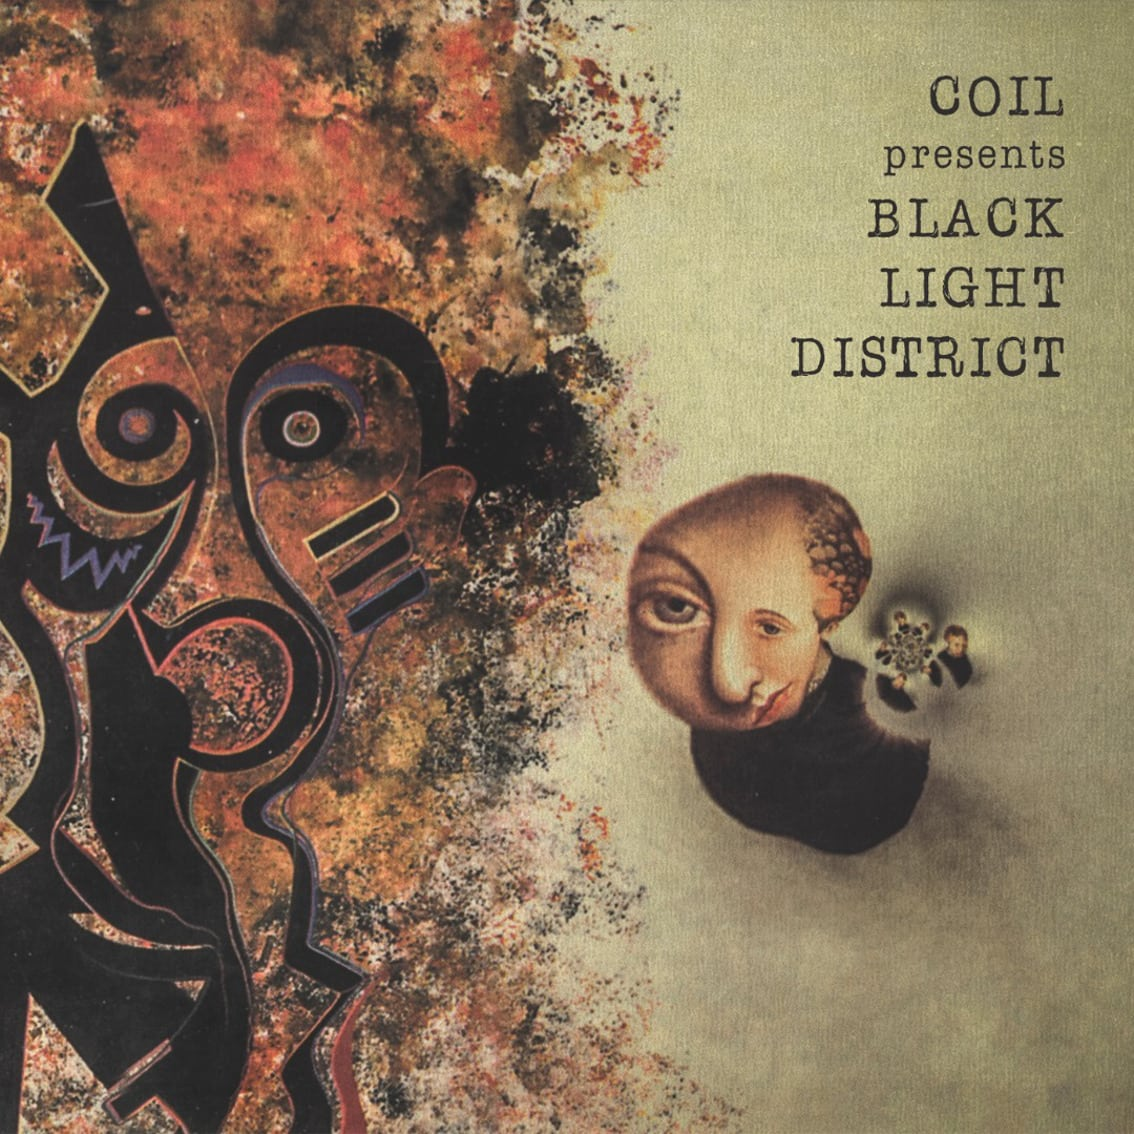 Classic Coil aka Black Light District album gets reissue with bonus track